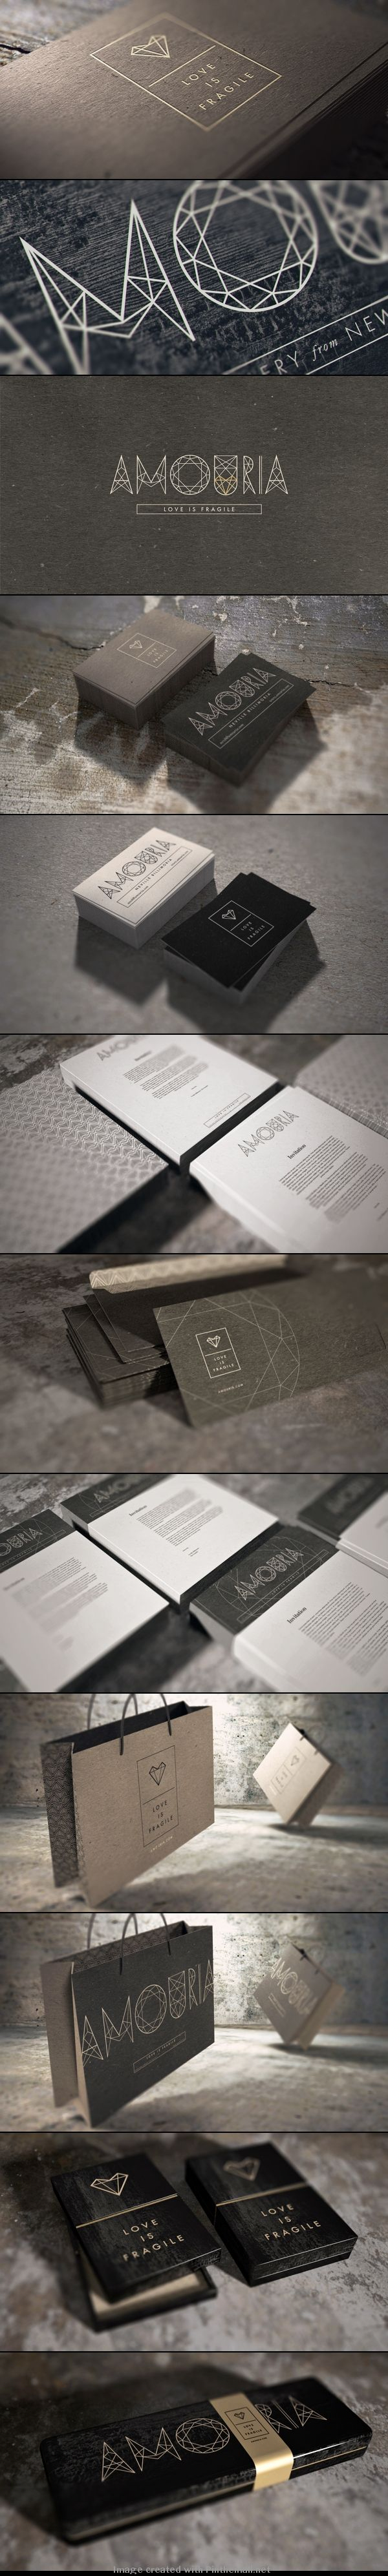 Amouria Jewelry branding, stationary and packaging design via Behance.